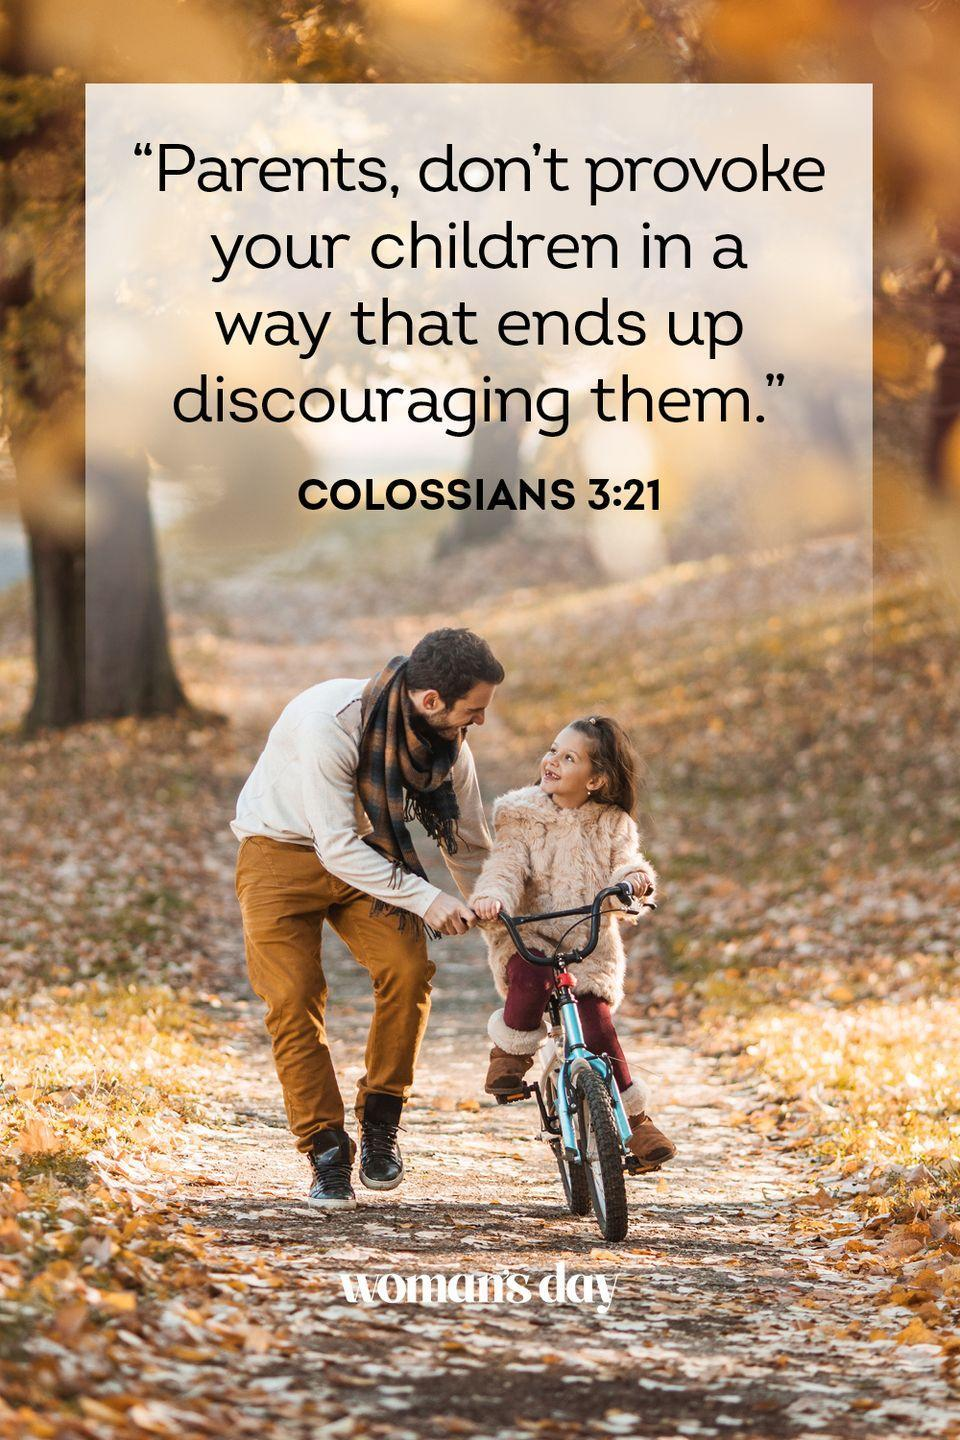 """<p>""""Parents, don't provoke your children in a way that ends up discouraging them."""" — Colossians 3:21</p><p><strong>The Good News: </strong>Parents, do not discourage or punish your children, particularly in their faith. This will cause them to be discouraged and spiteful.</p>"""